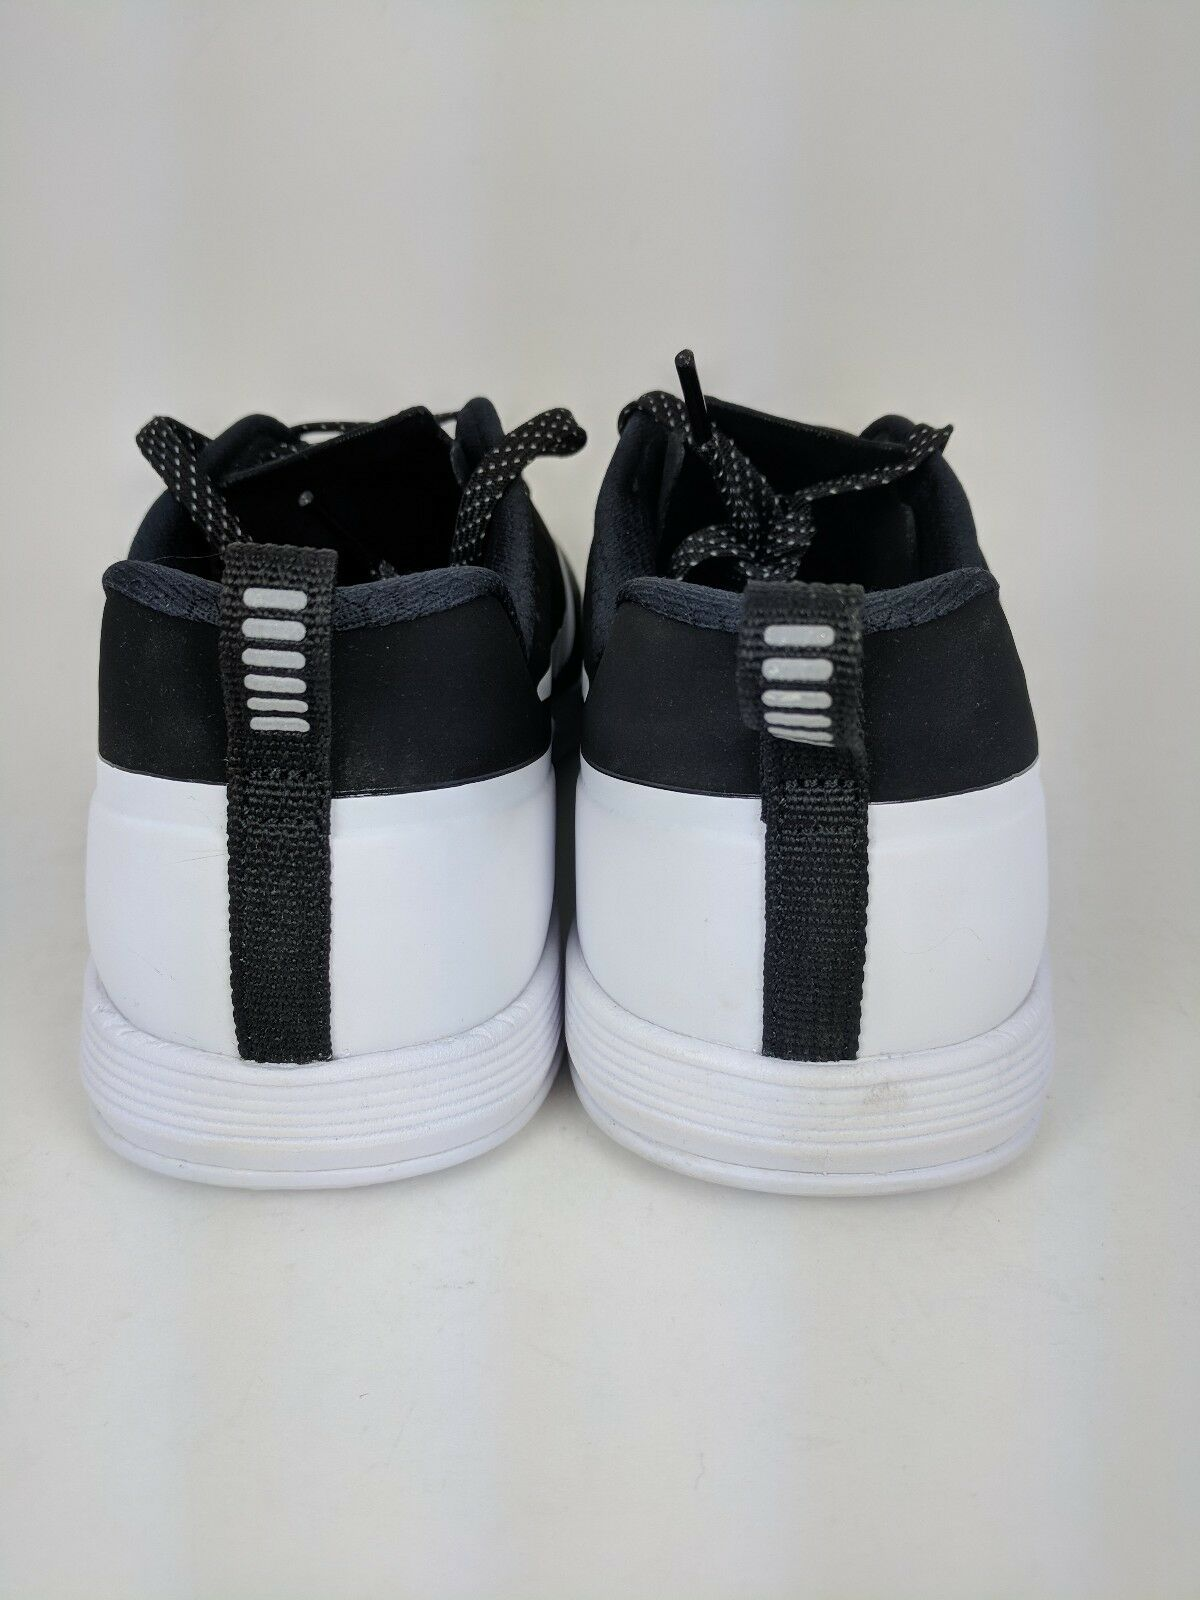 detailed look 93a91 0fef5 ... Nike Men s Metcon 1 AMP PX Training Crossfit Shoes Shoes Shoes Black  White Sz 7 (